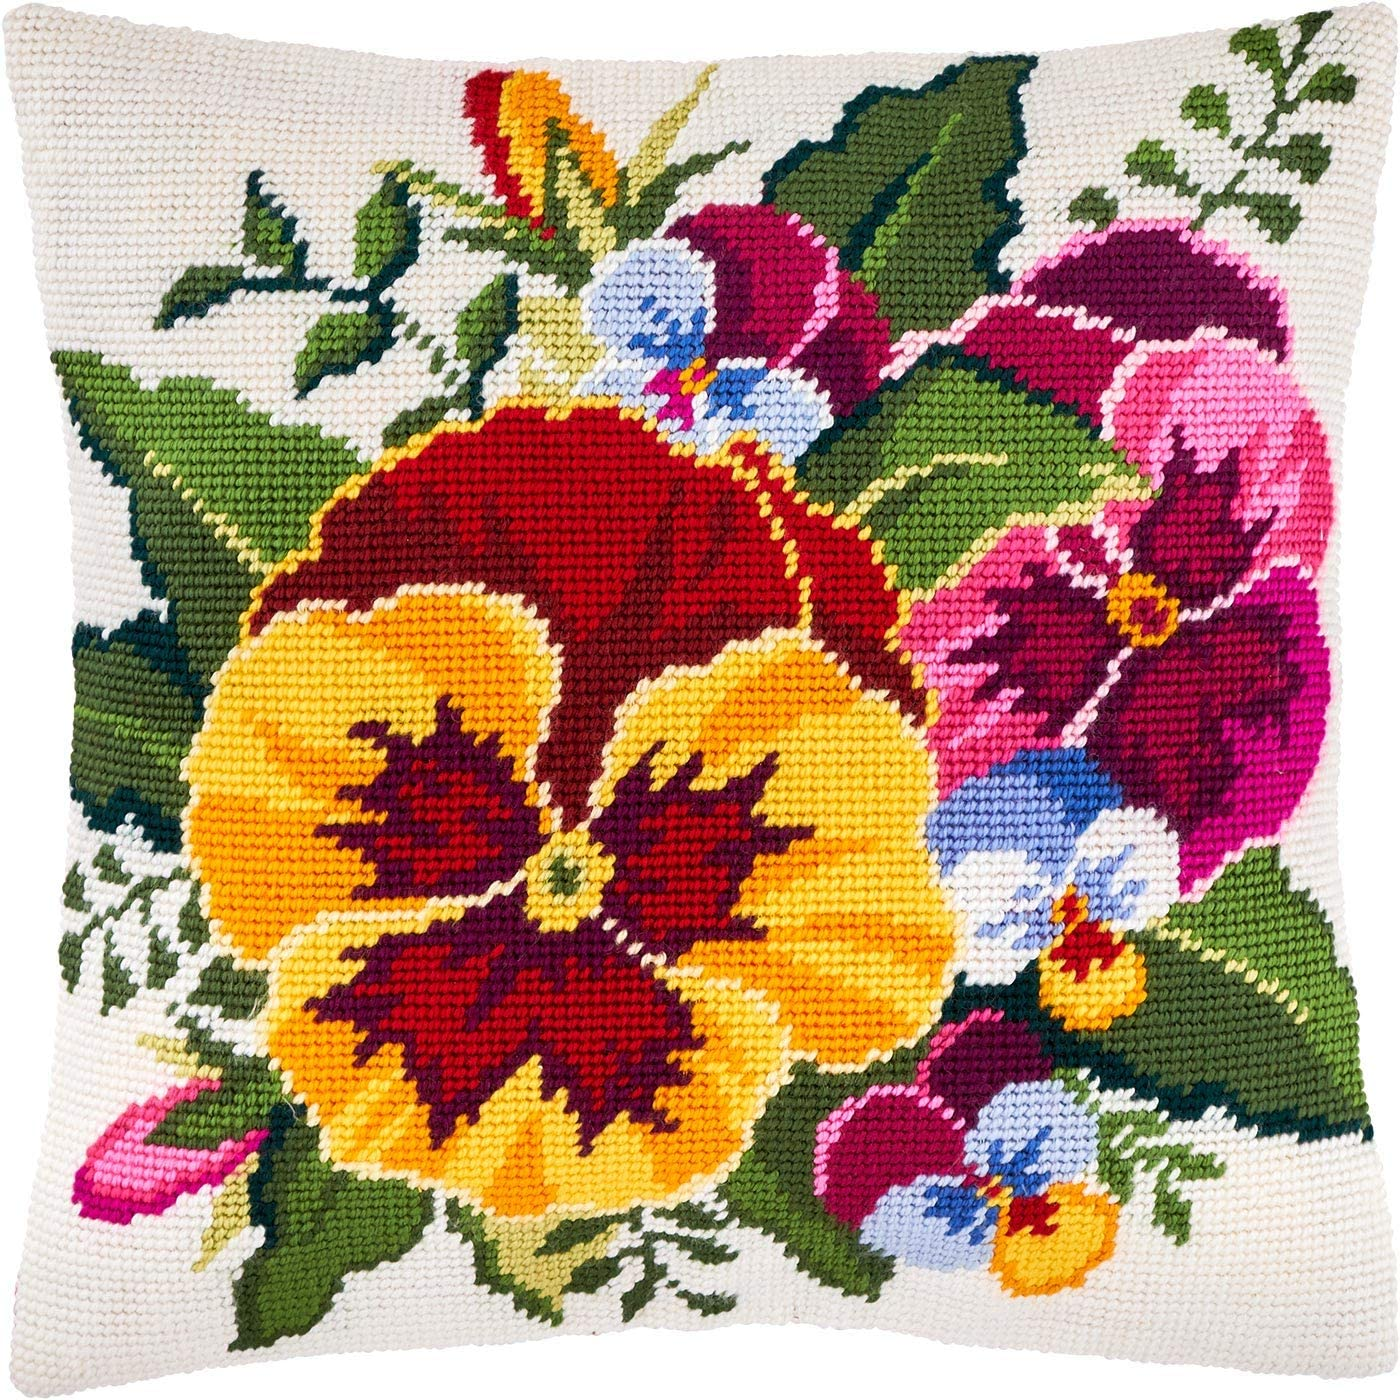 Violas. Needlepoint Kit. Throw Pillow Import Tape 2021 model Inches. Printed 16×16